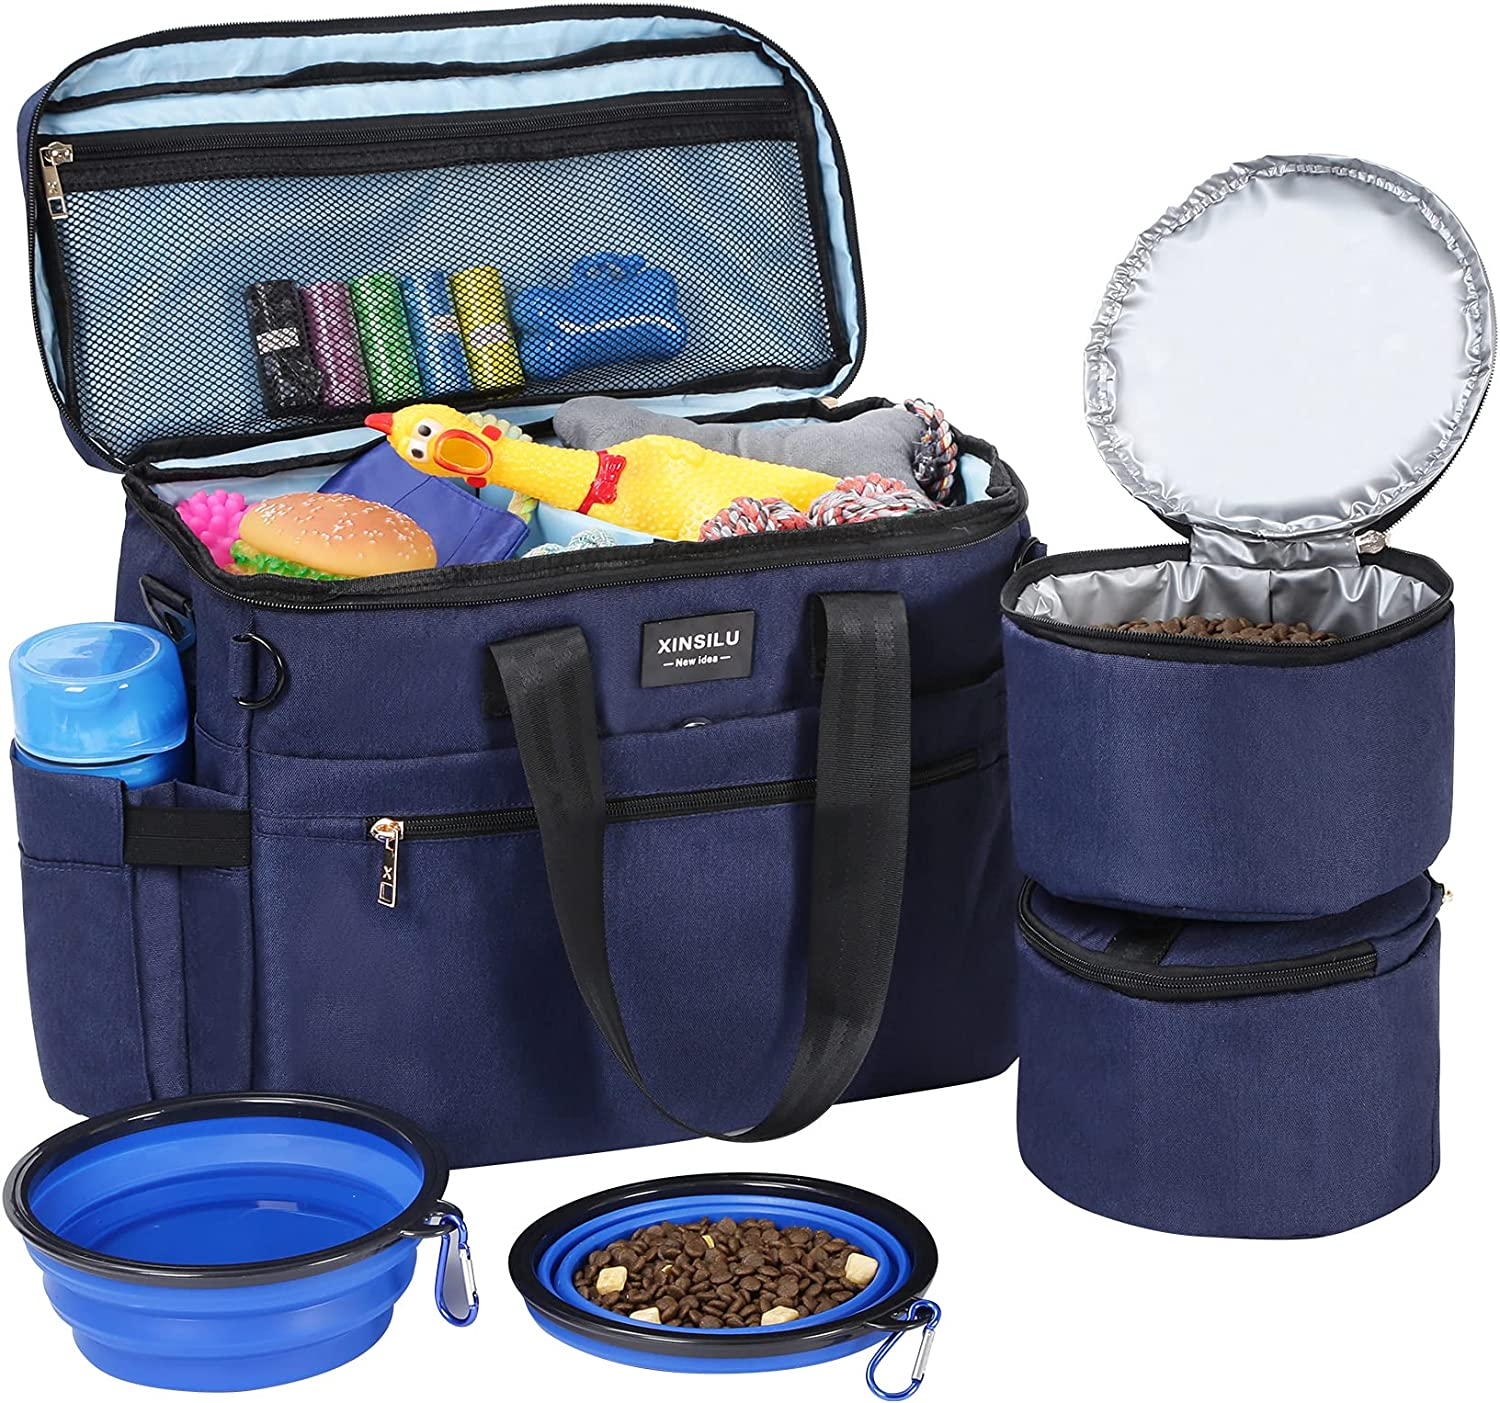 Xinsilu Dog Travel Bag, Pet Owner Multi-Use Dog Outdoor Bag, Include 2X Collapsible Dog Bowls, 2X Food Storage Containers, Airplane Approved, Perfect Weekend Pet Travel Set for Dog, Cat, Blue